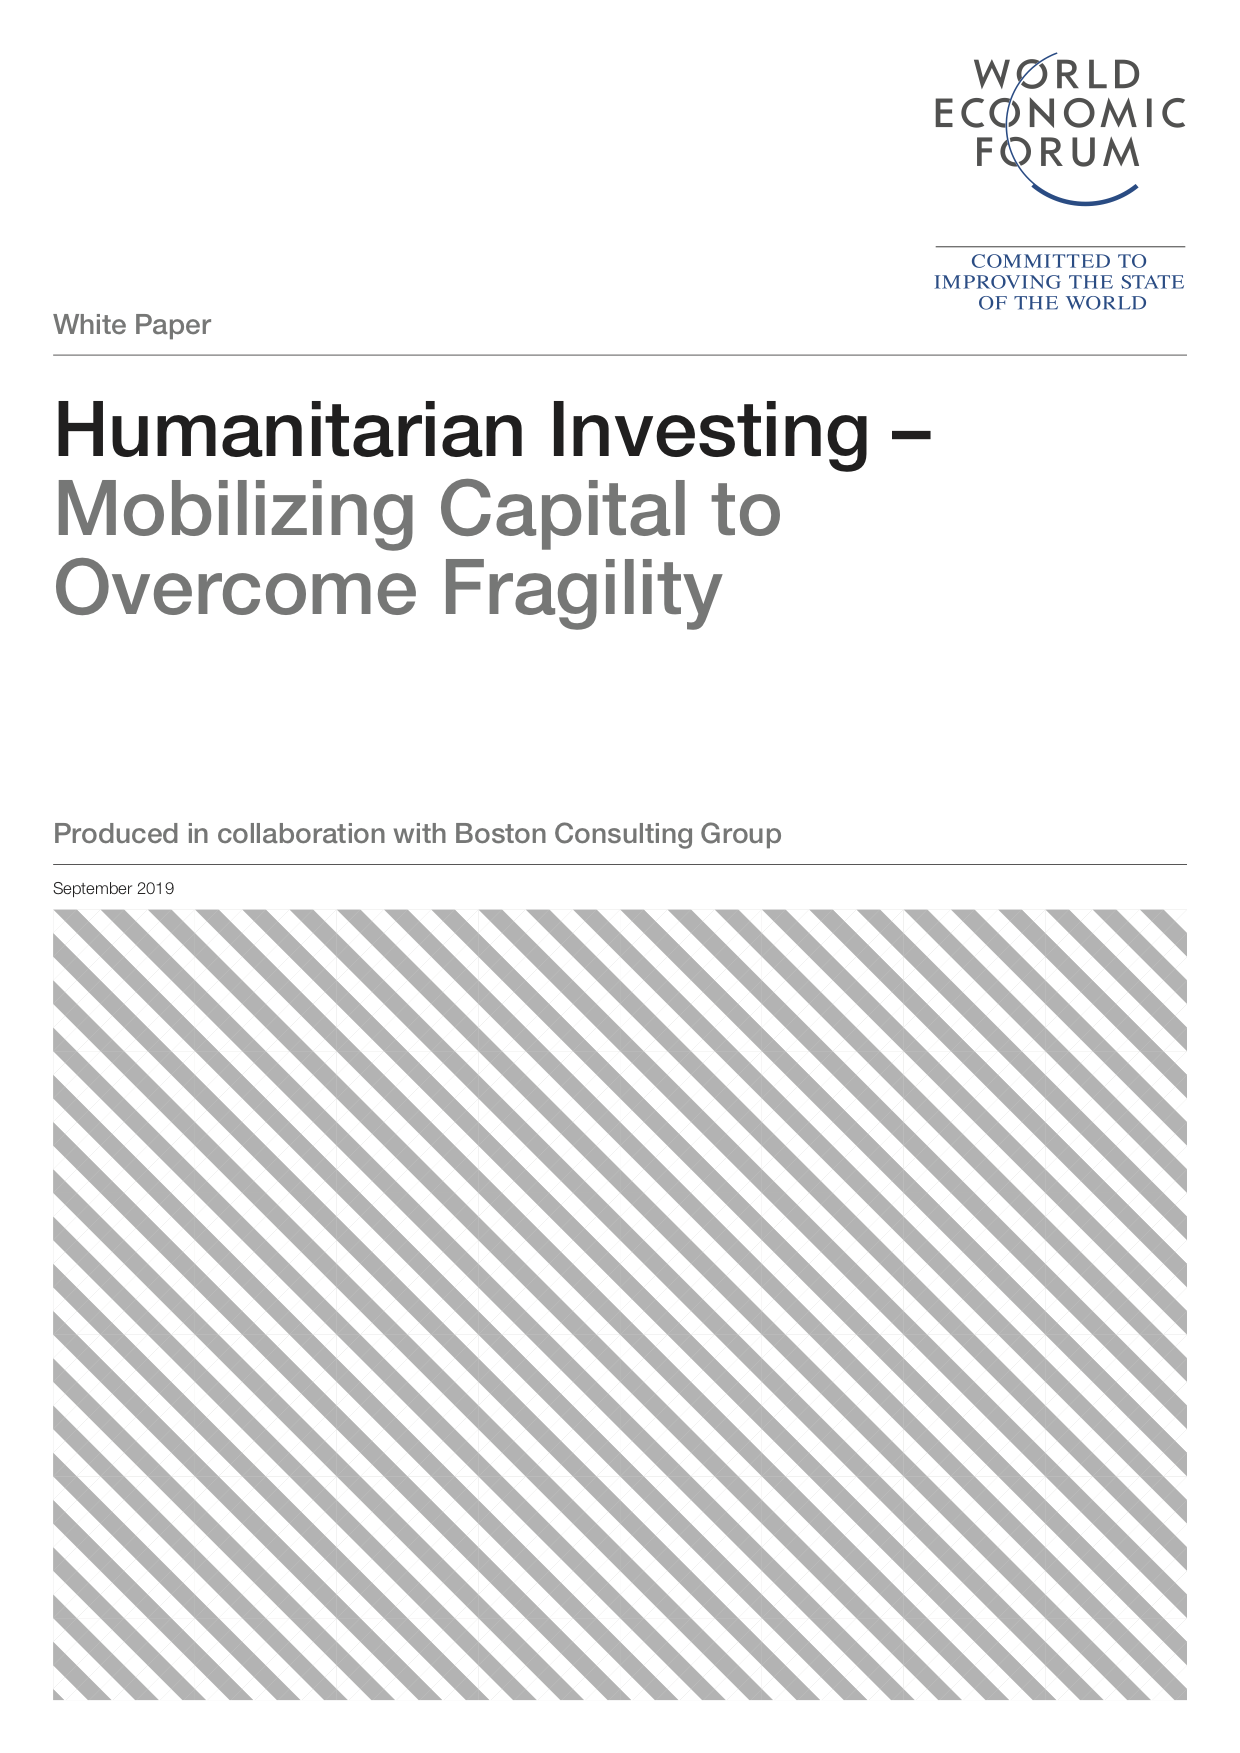 Humanitarian Investing – Mobilizing Capital to Overcome Fragility